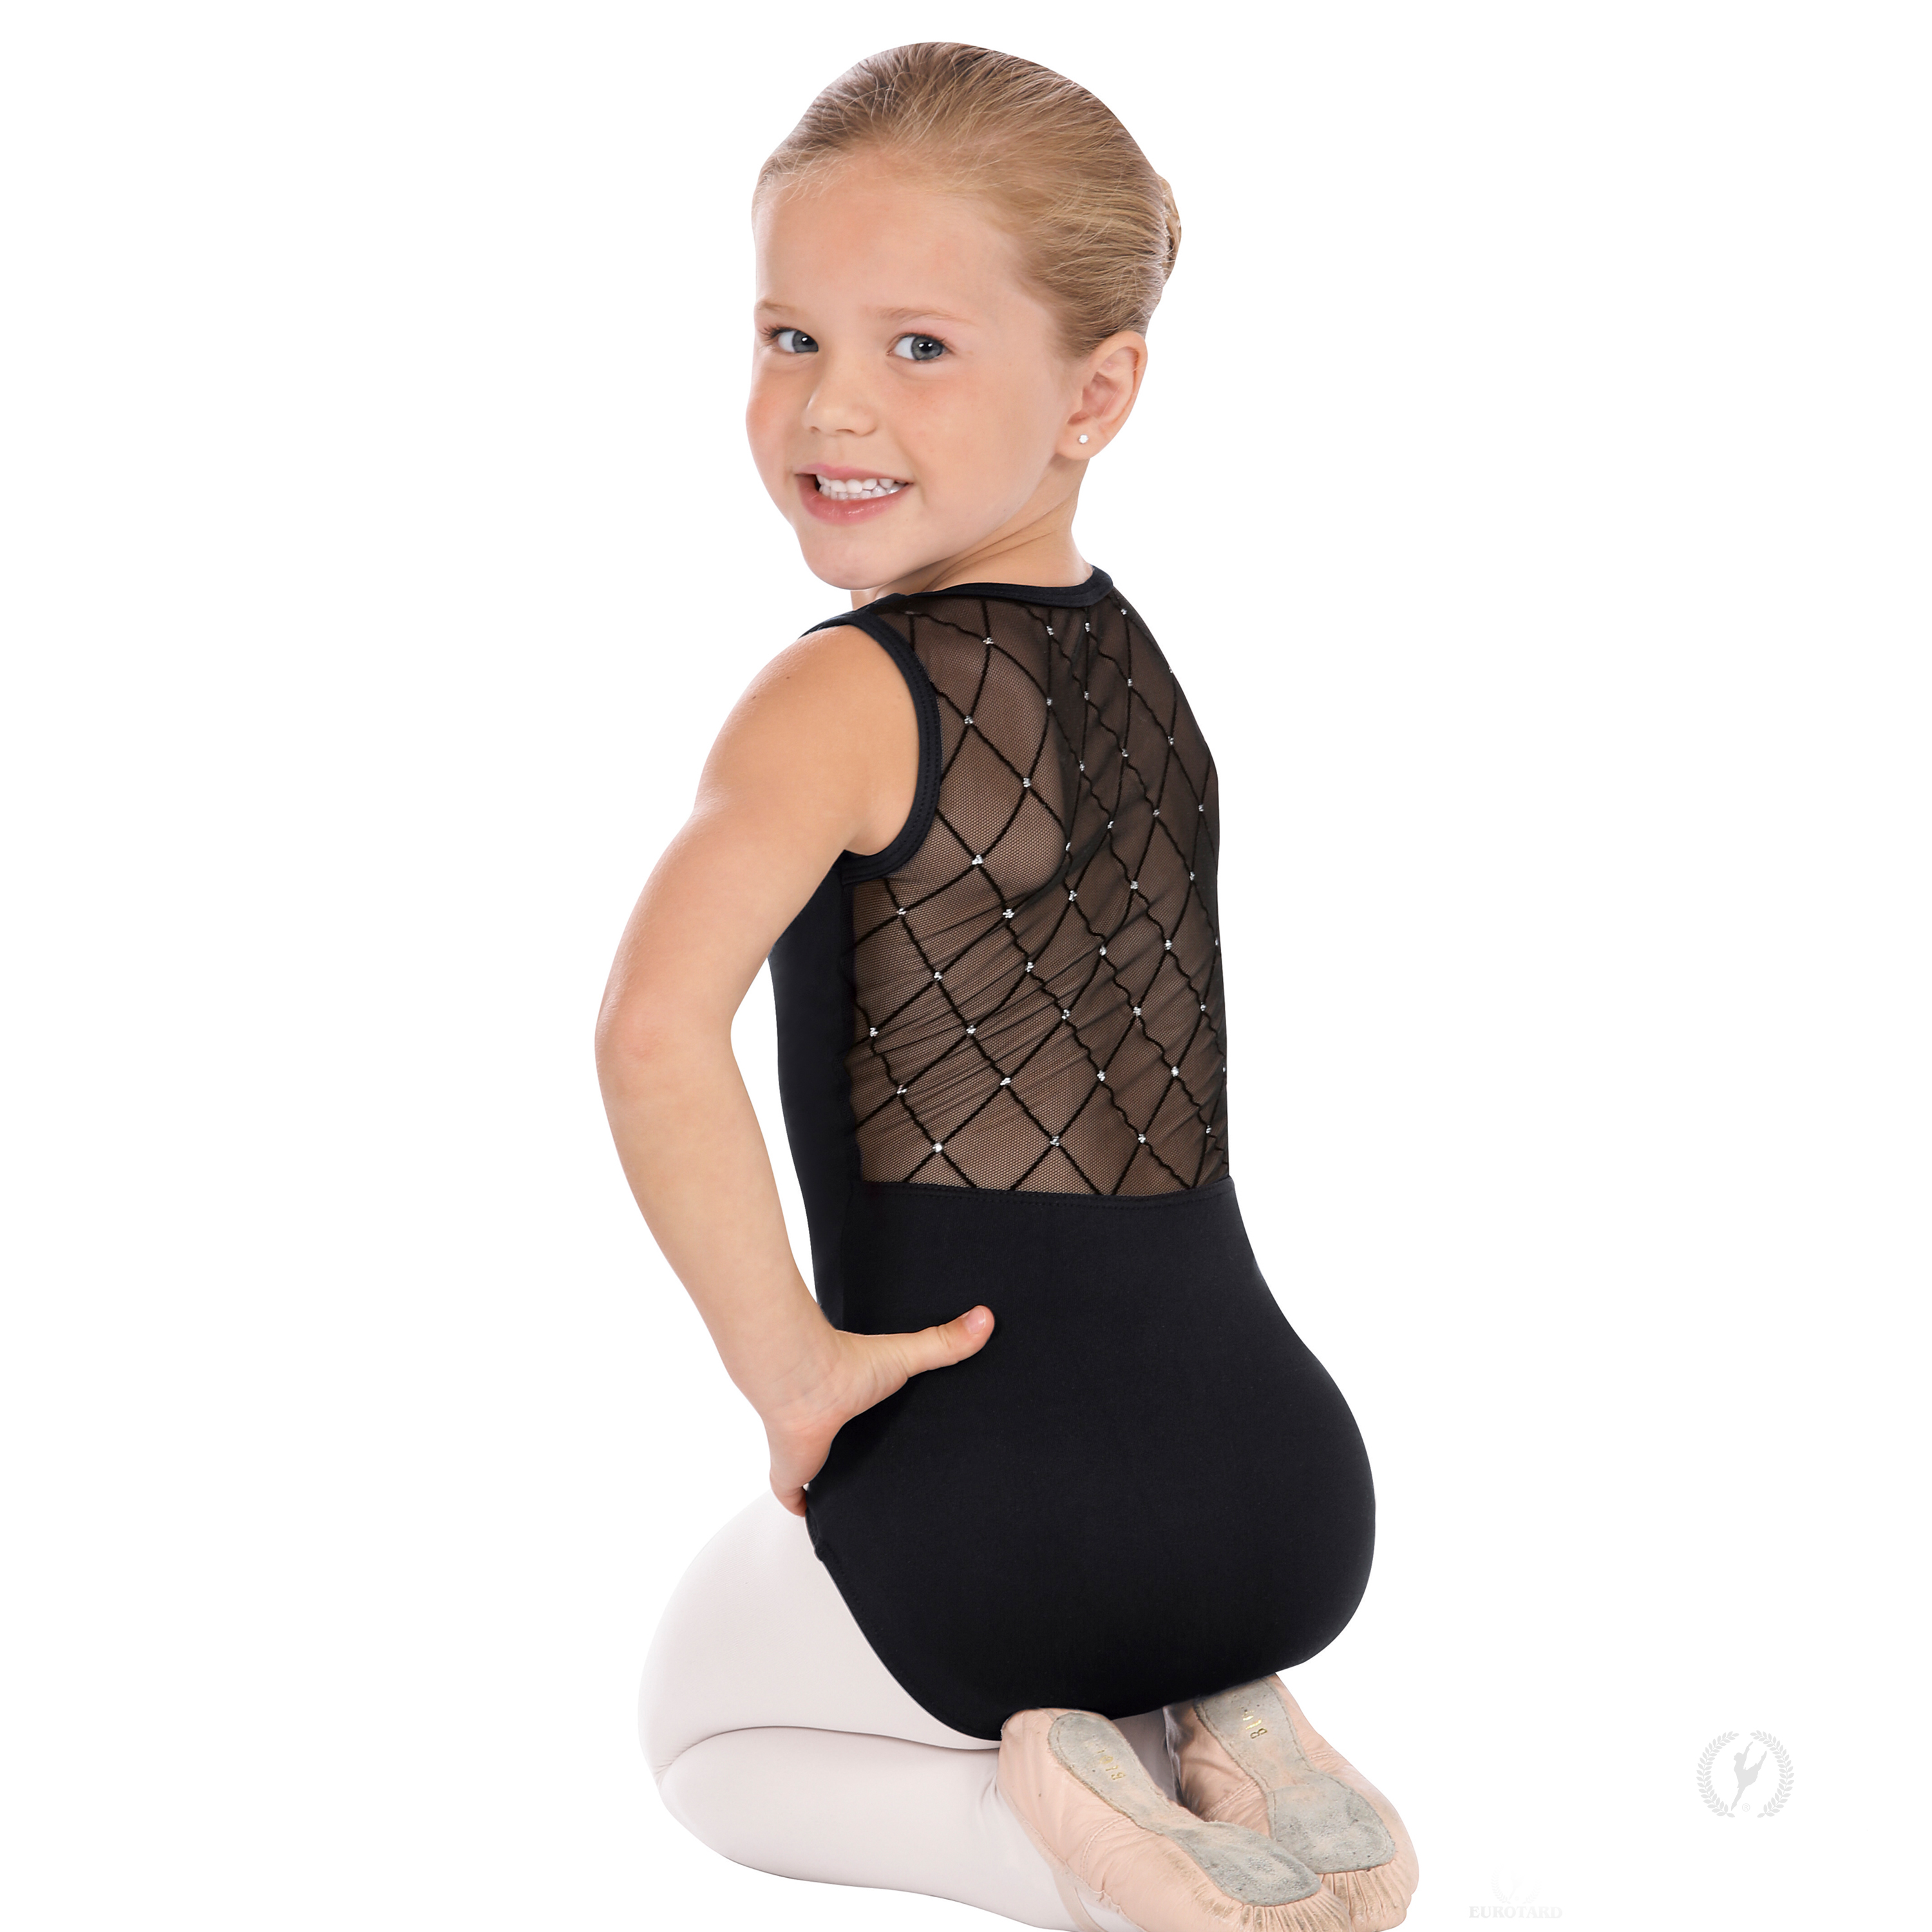 c1722b5f9be4 Girls Diamond Back Leotard by Eurotard